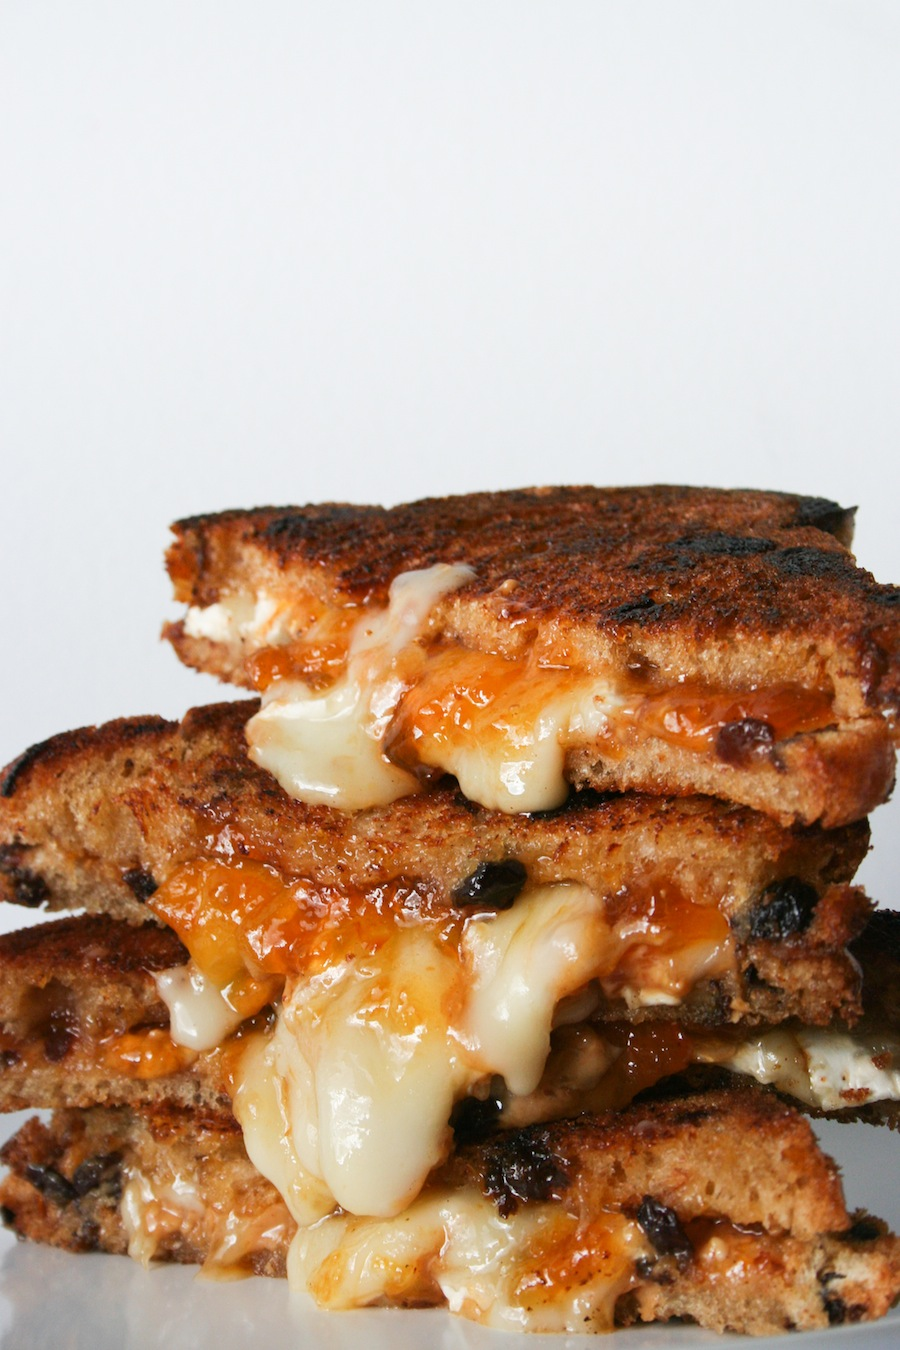 Peanut Butter & Jelly Grilled Cheese Sandwich